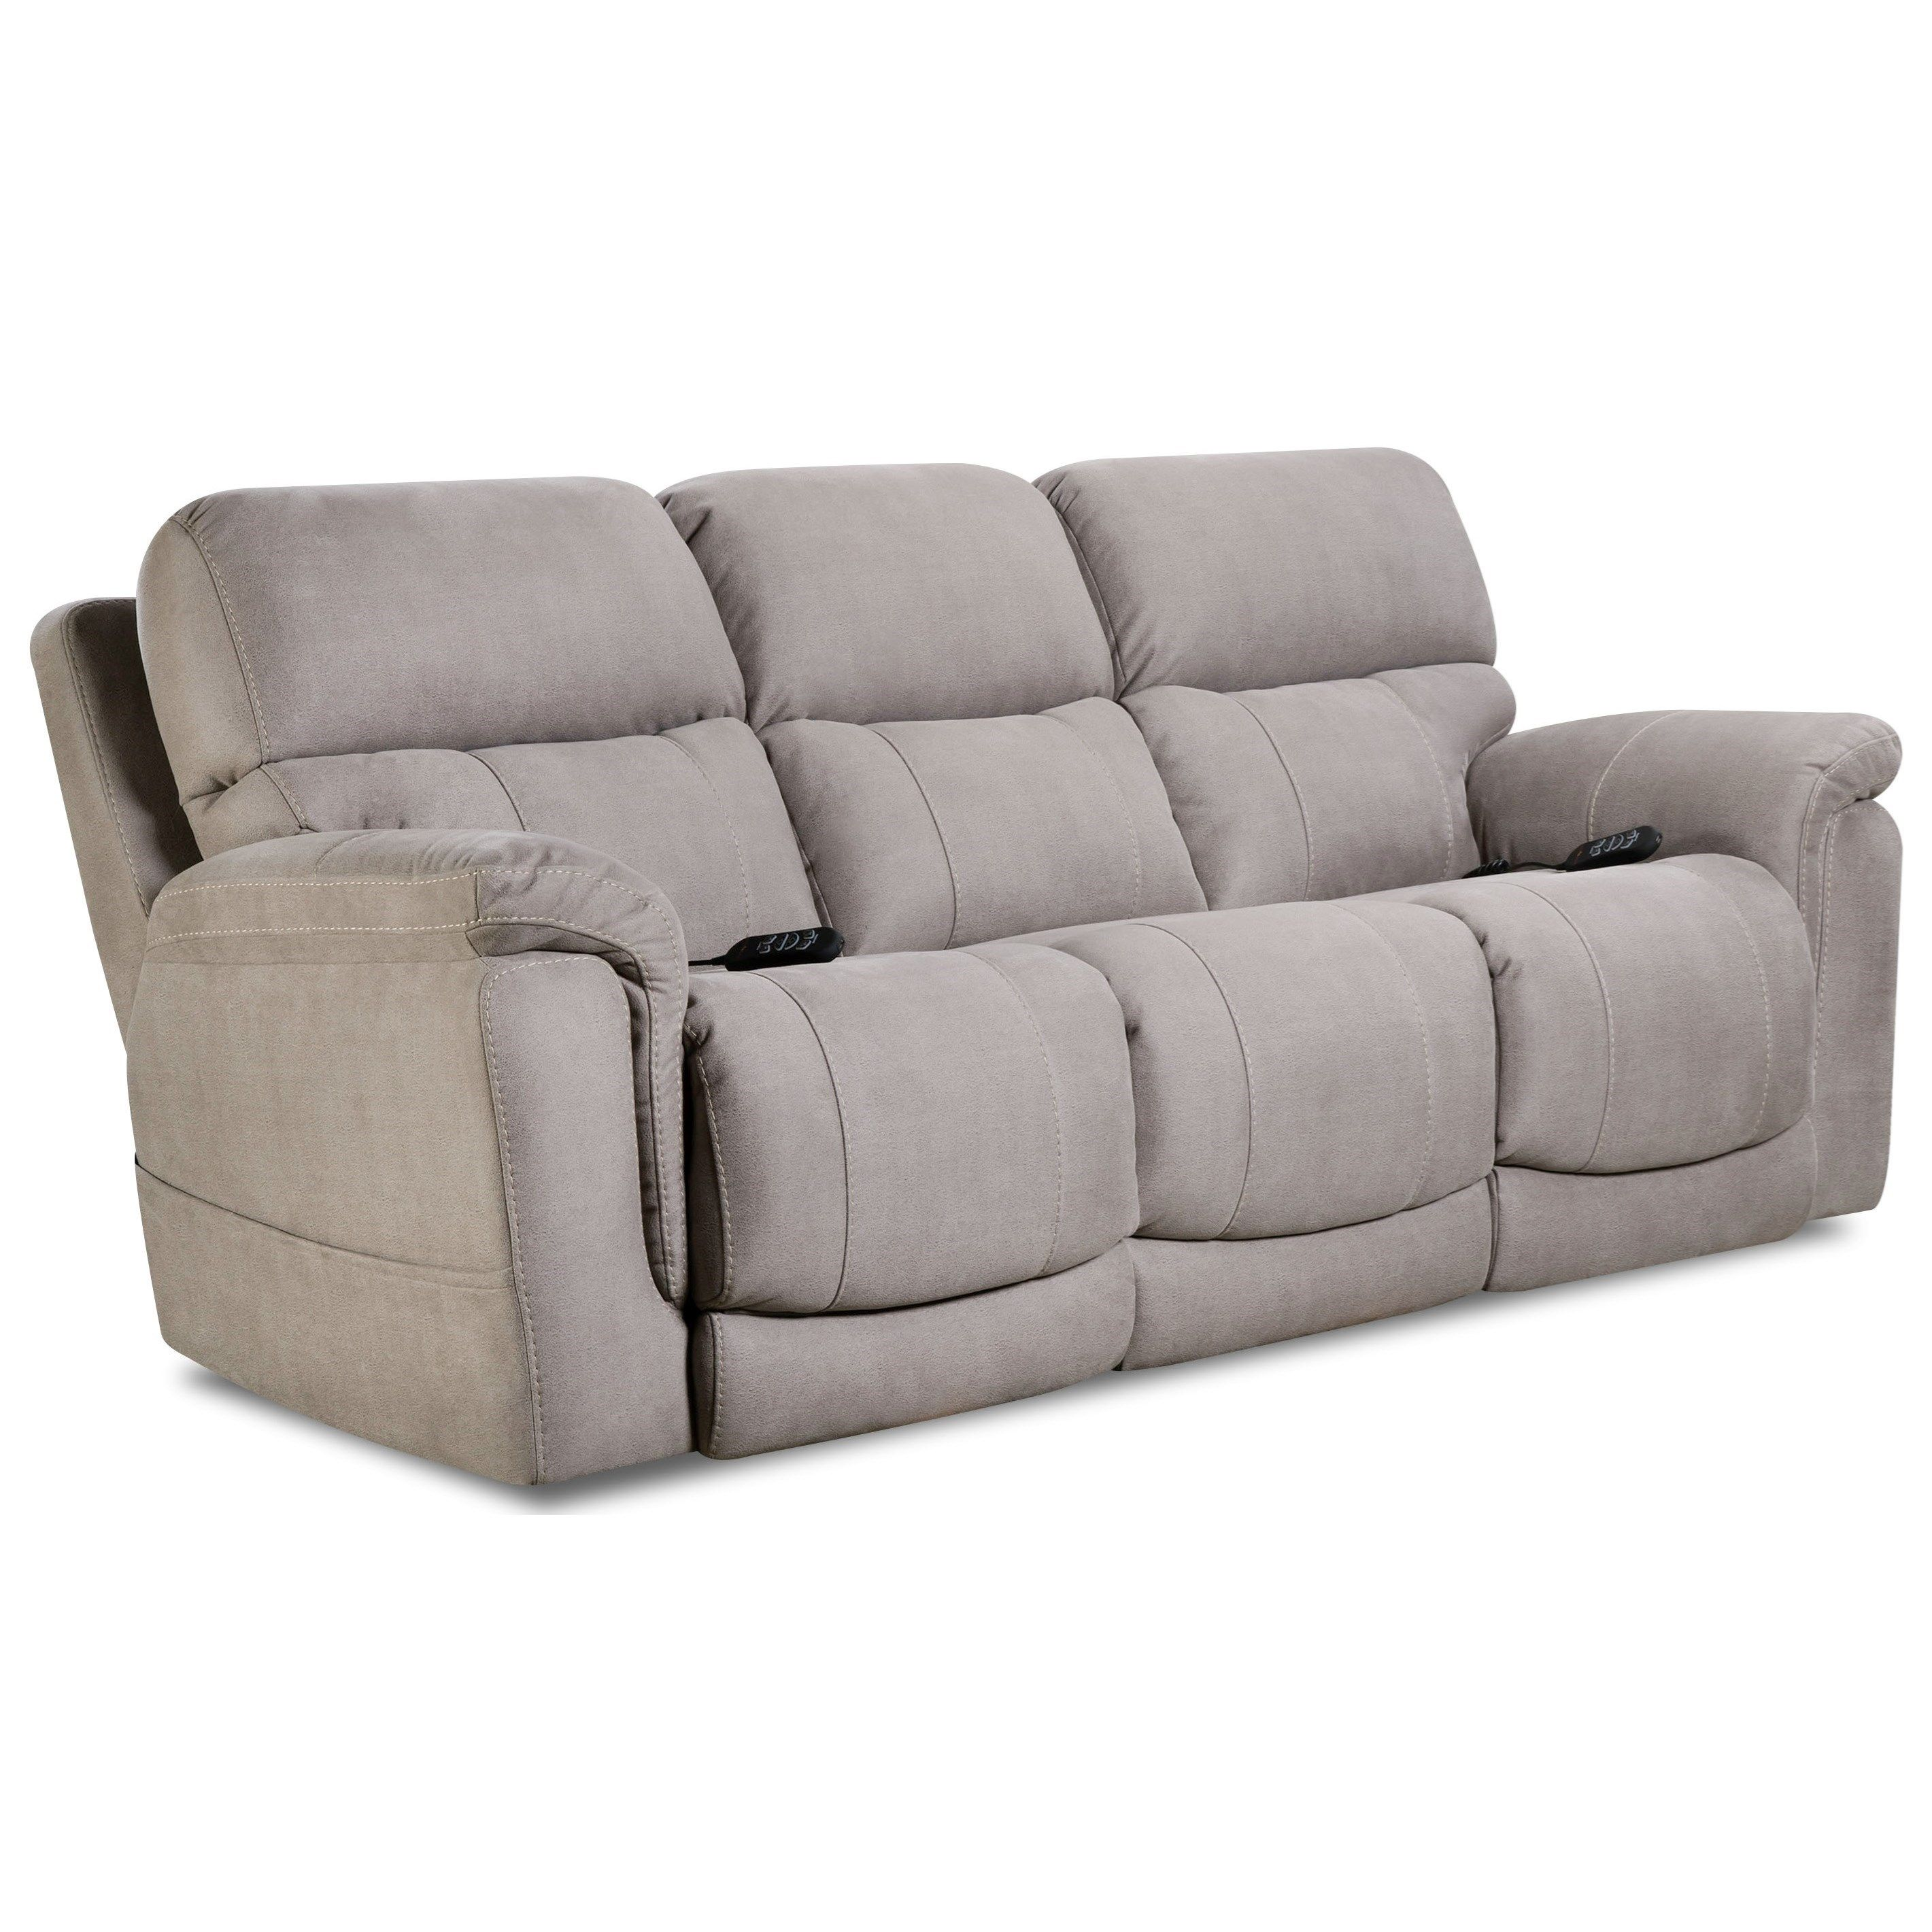 Double Reclining Power Sofa Sofa Chelsea Home Furniture Reclining Sofa